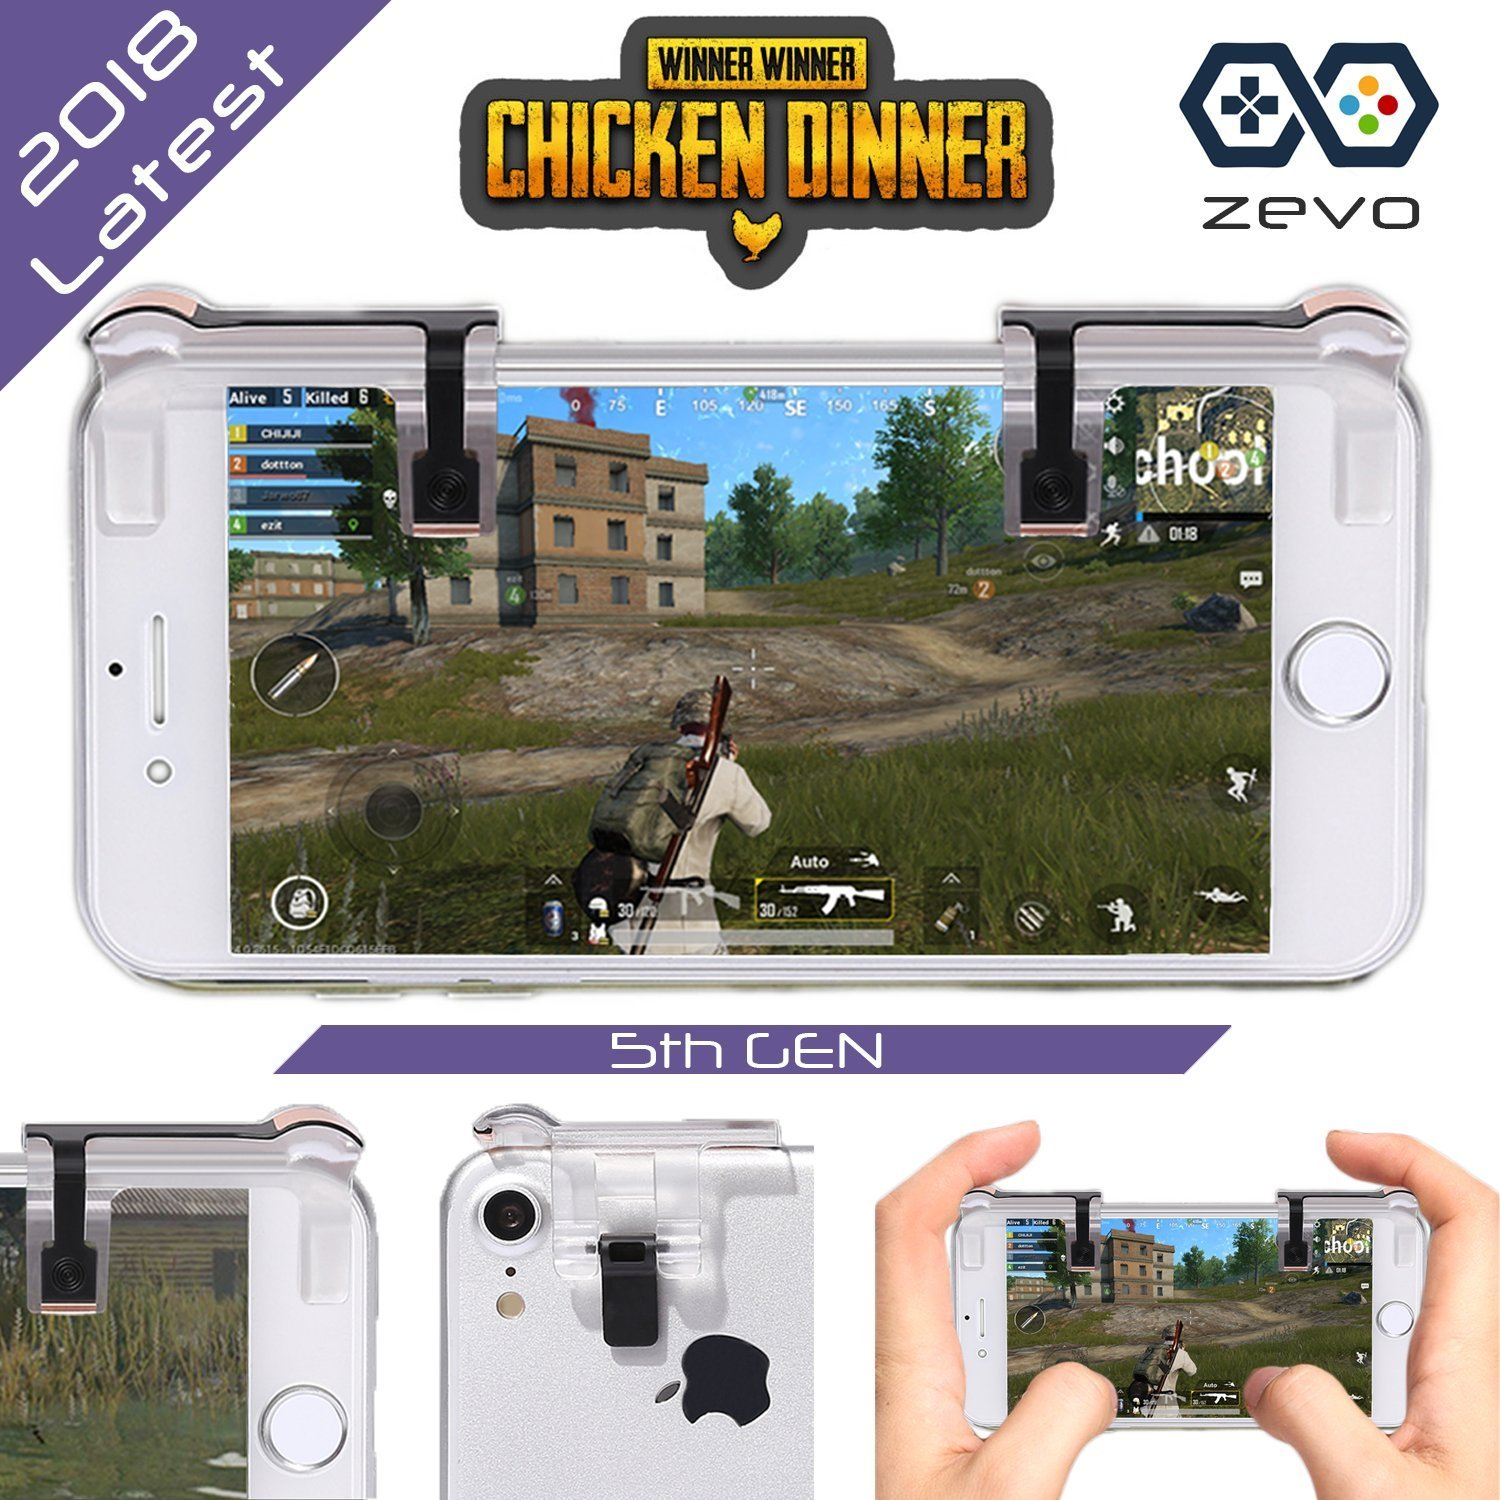 Pubg Mobile Game Controller L1 R1 Fortnite Stick Pad Knives Out Rules Survival Joystick Sensitive Shoot Aim Buttons Triggers Android Iphone Ios